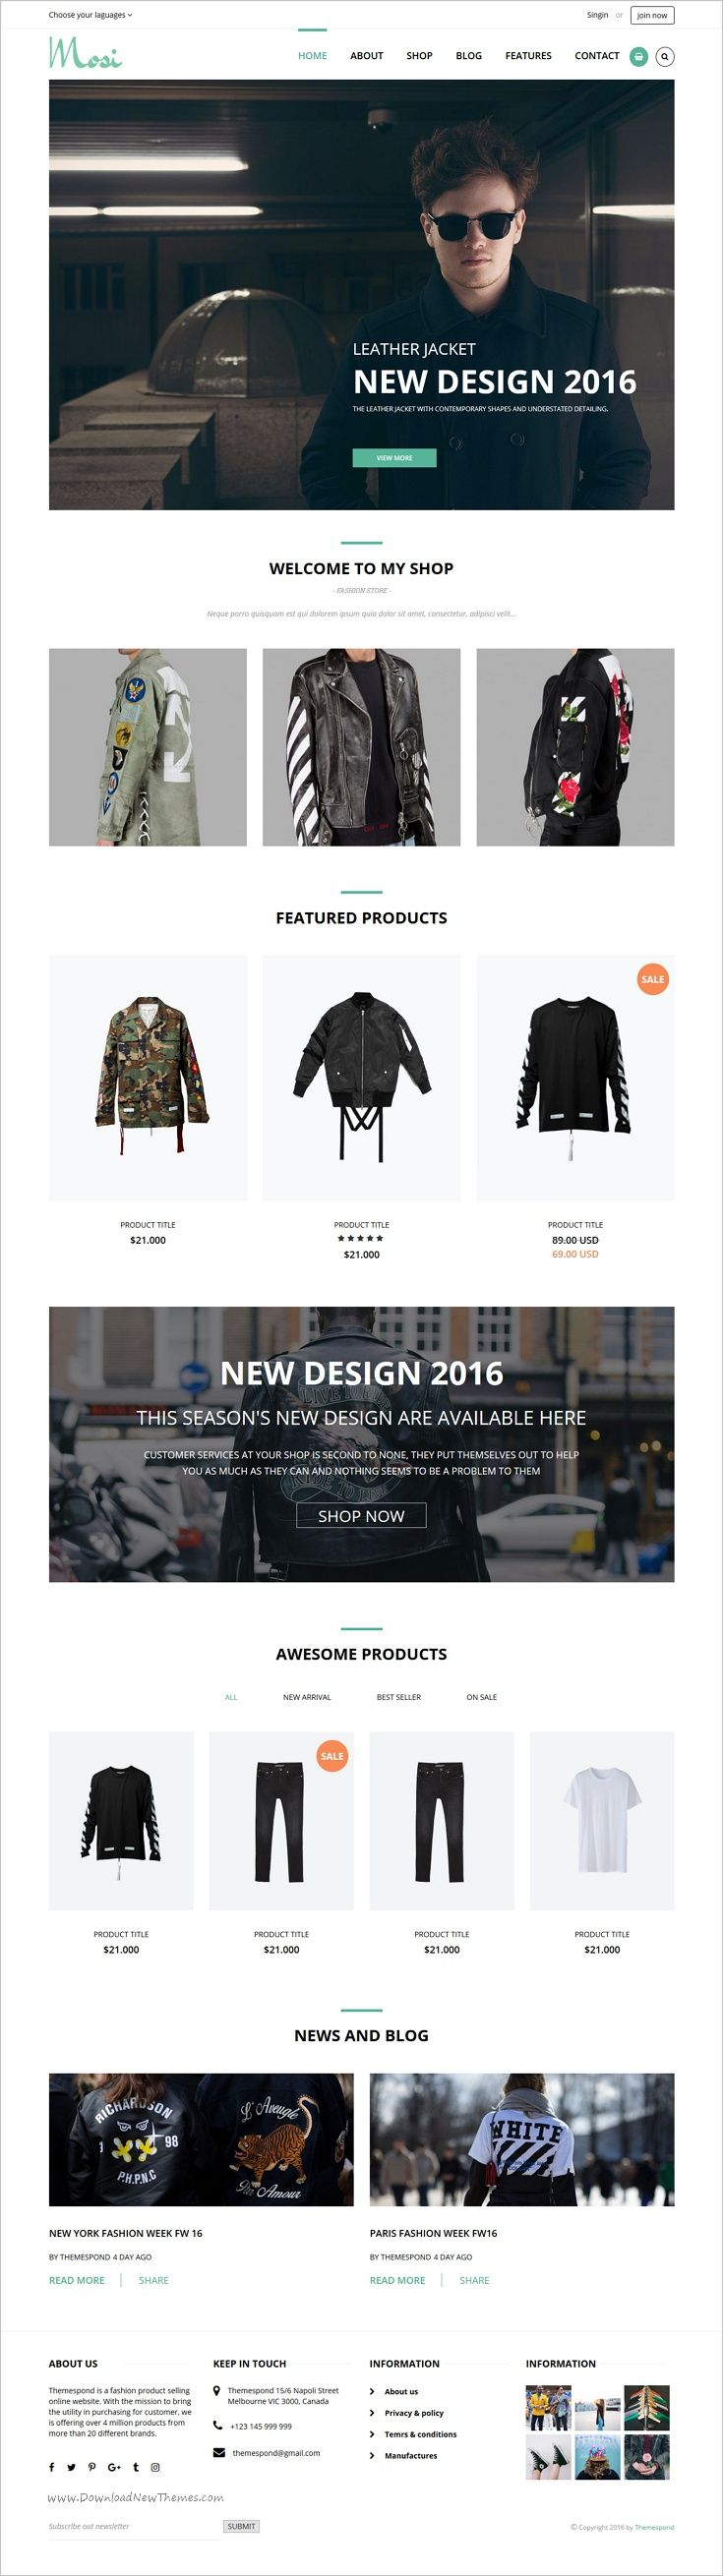 14 best E-commerce images on Pinterest | E commerce, Web design ...